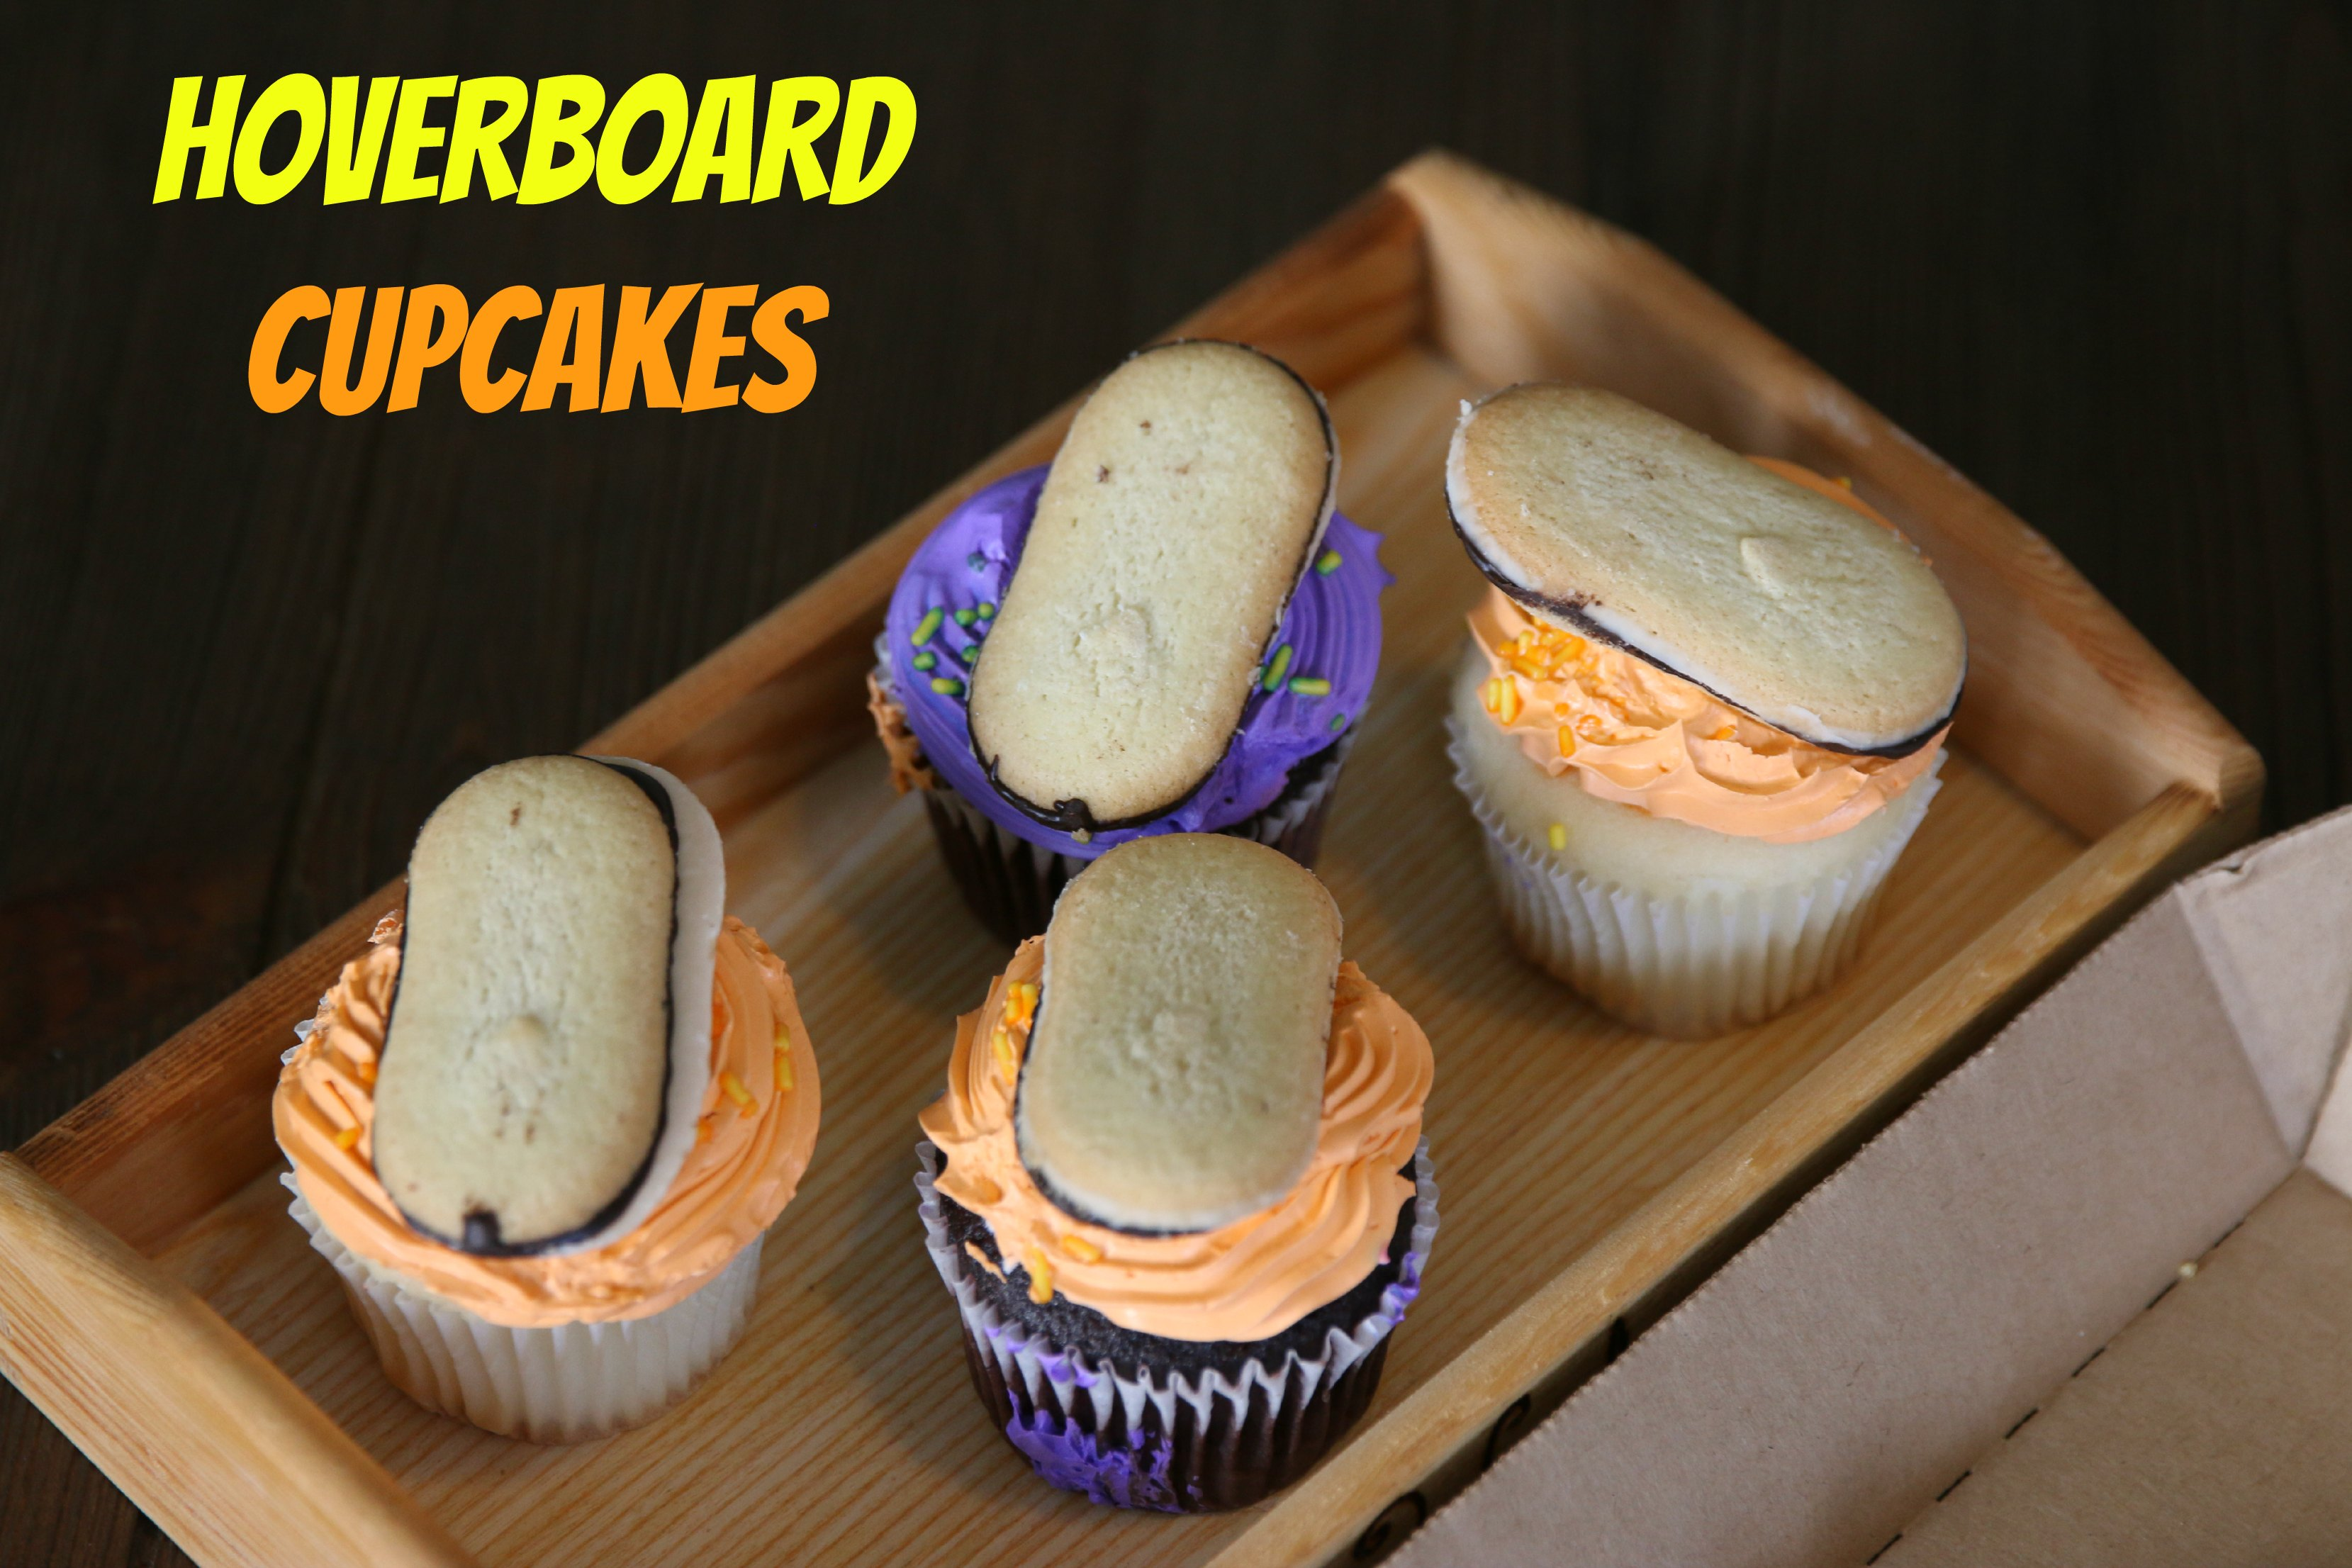 hoverboard cupcakes